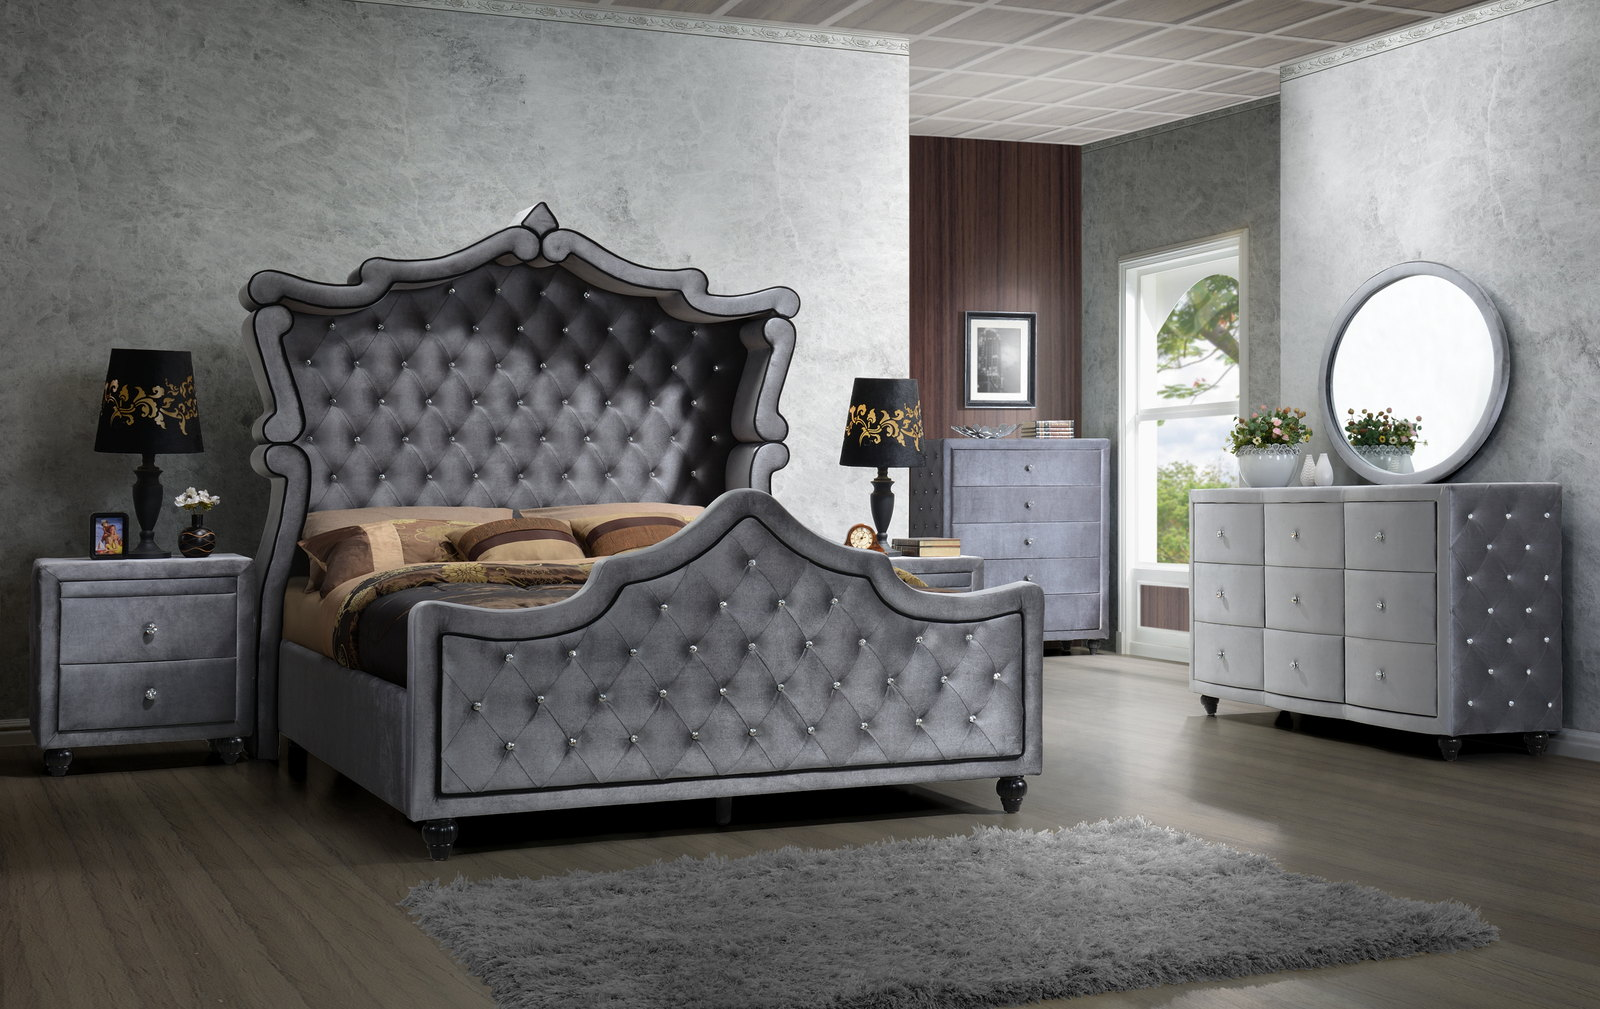 Meridian Hudson Canopy Bedroom Set in GreyMedia Image